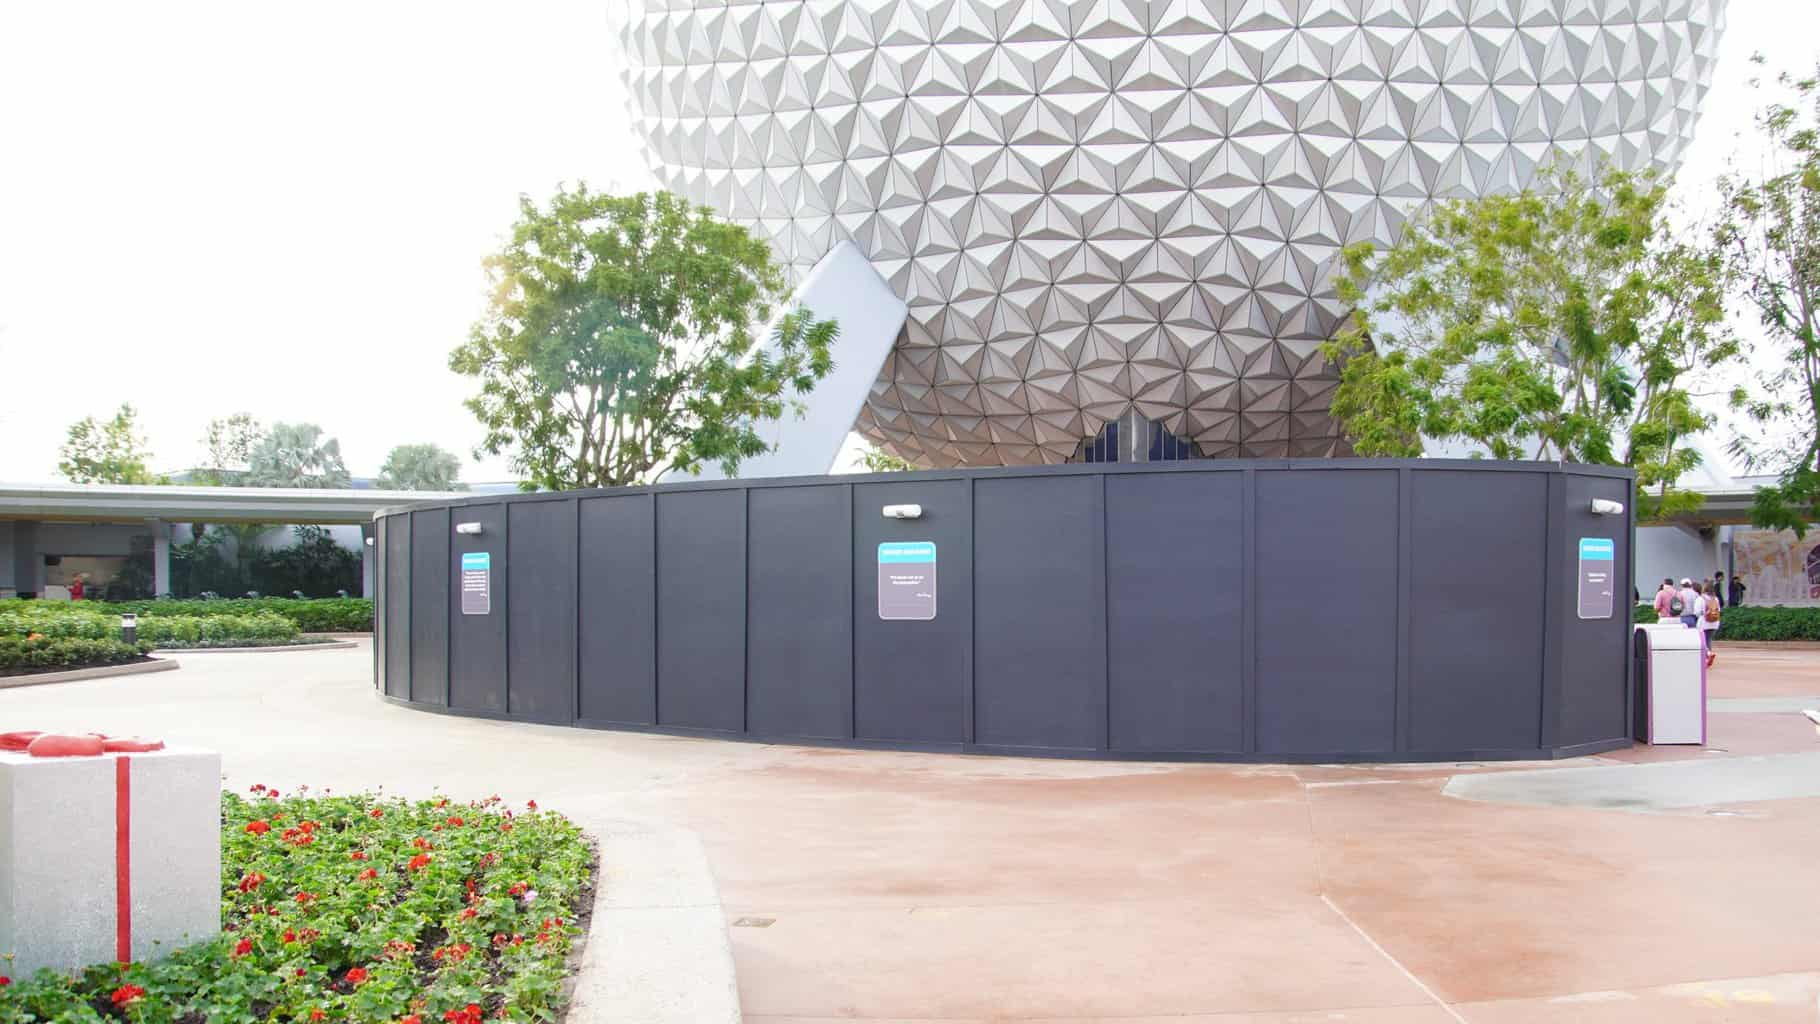 walls around the Epcot fountain